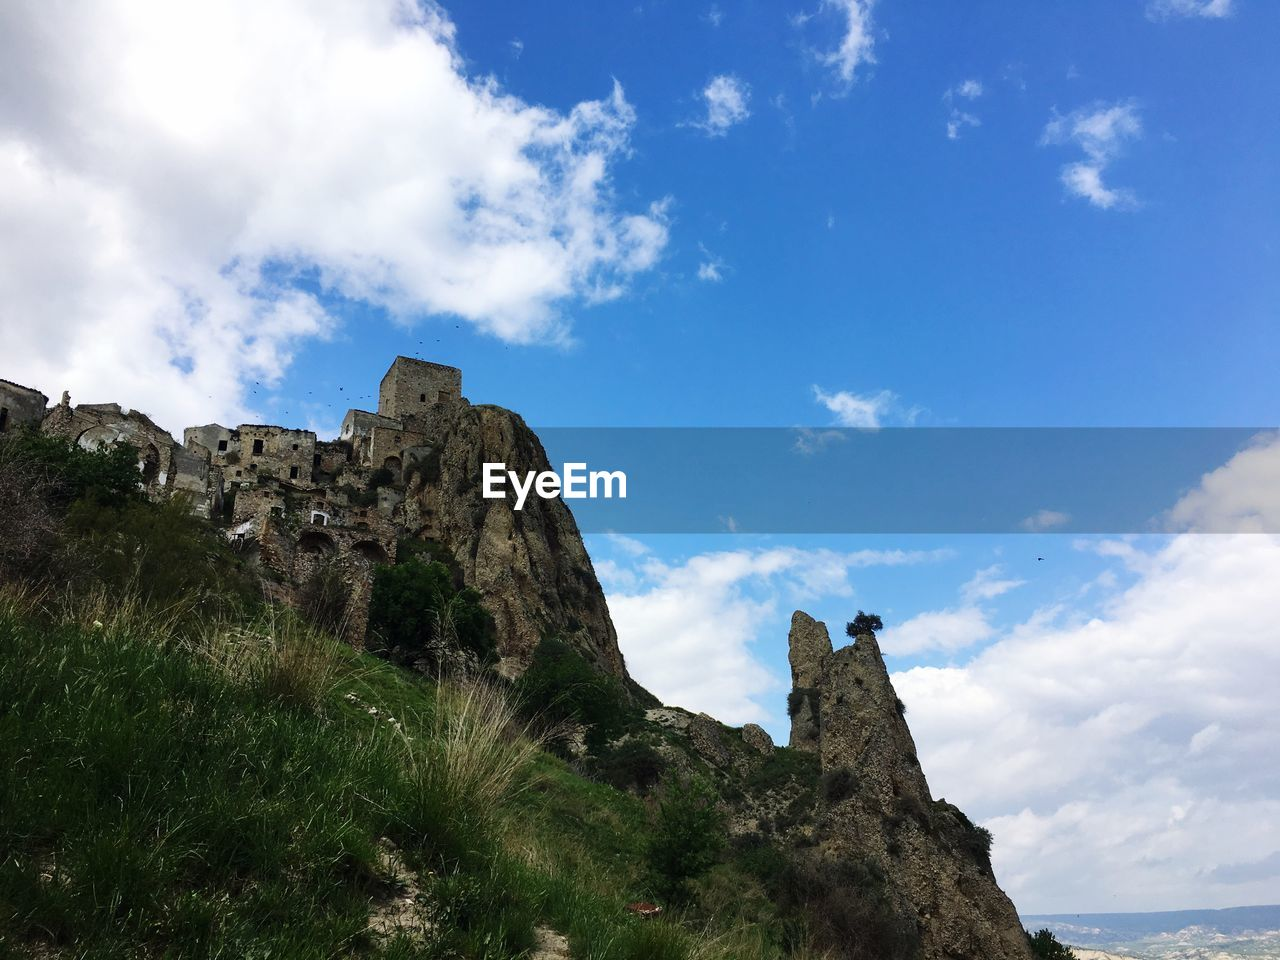 rock - object, rock formation, sky, cliff, nature, cloud - sky, scenics, day, mountain, low angle view, tranquility, travel destinations, history, outdoors, tranquil scene, beauty in nature, architecture, castle, built structure, building exterior, landscape, no people